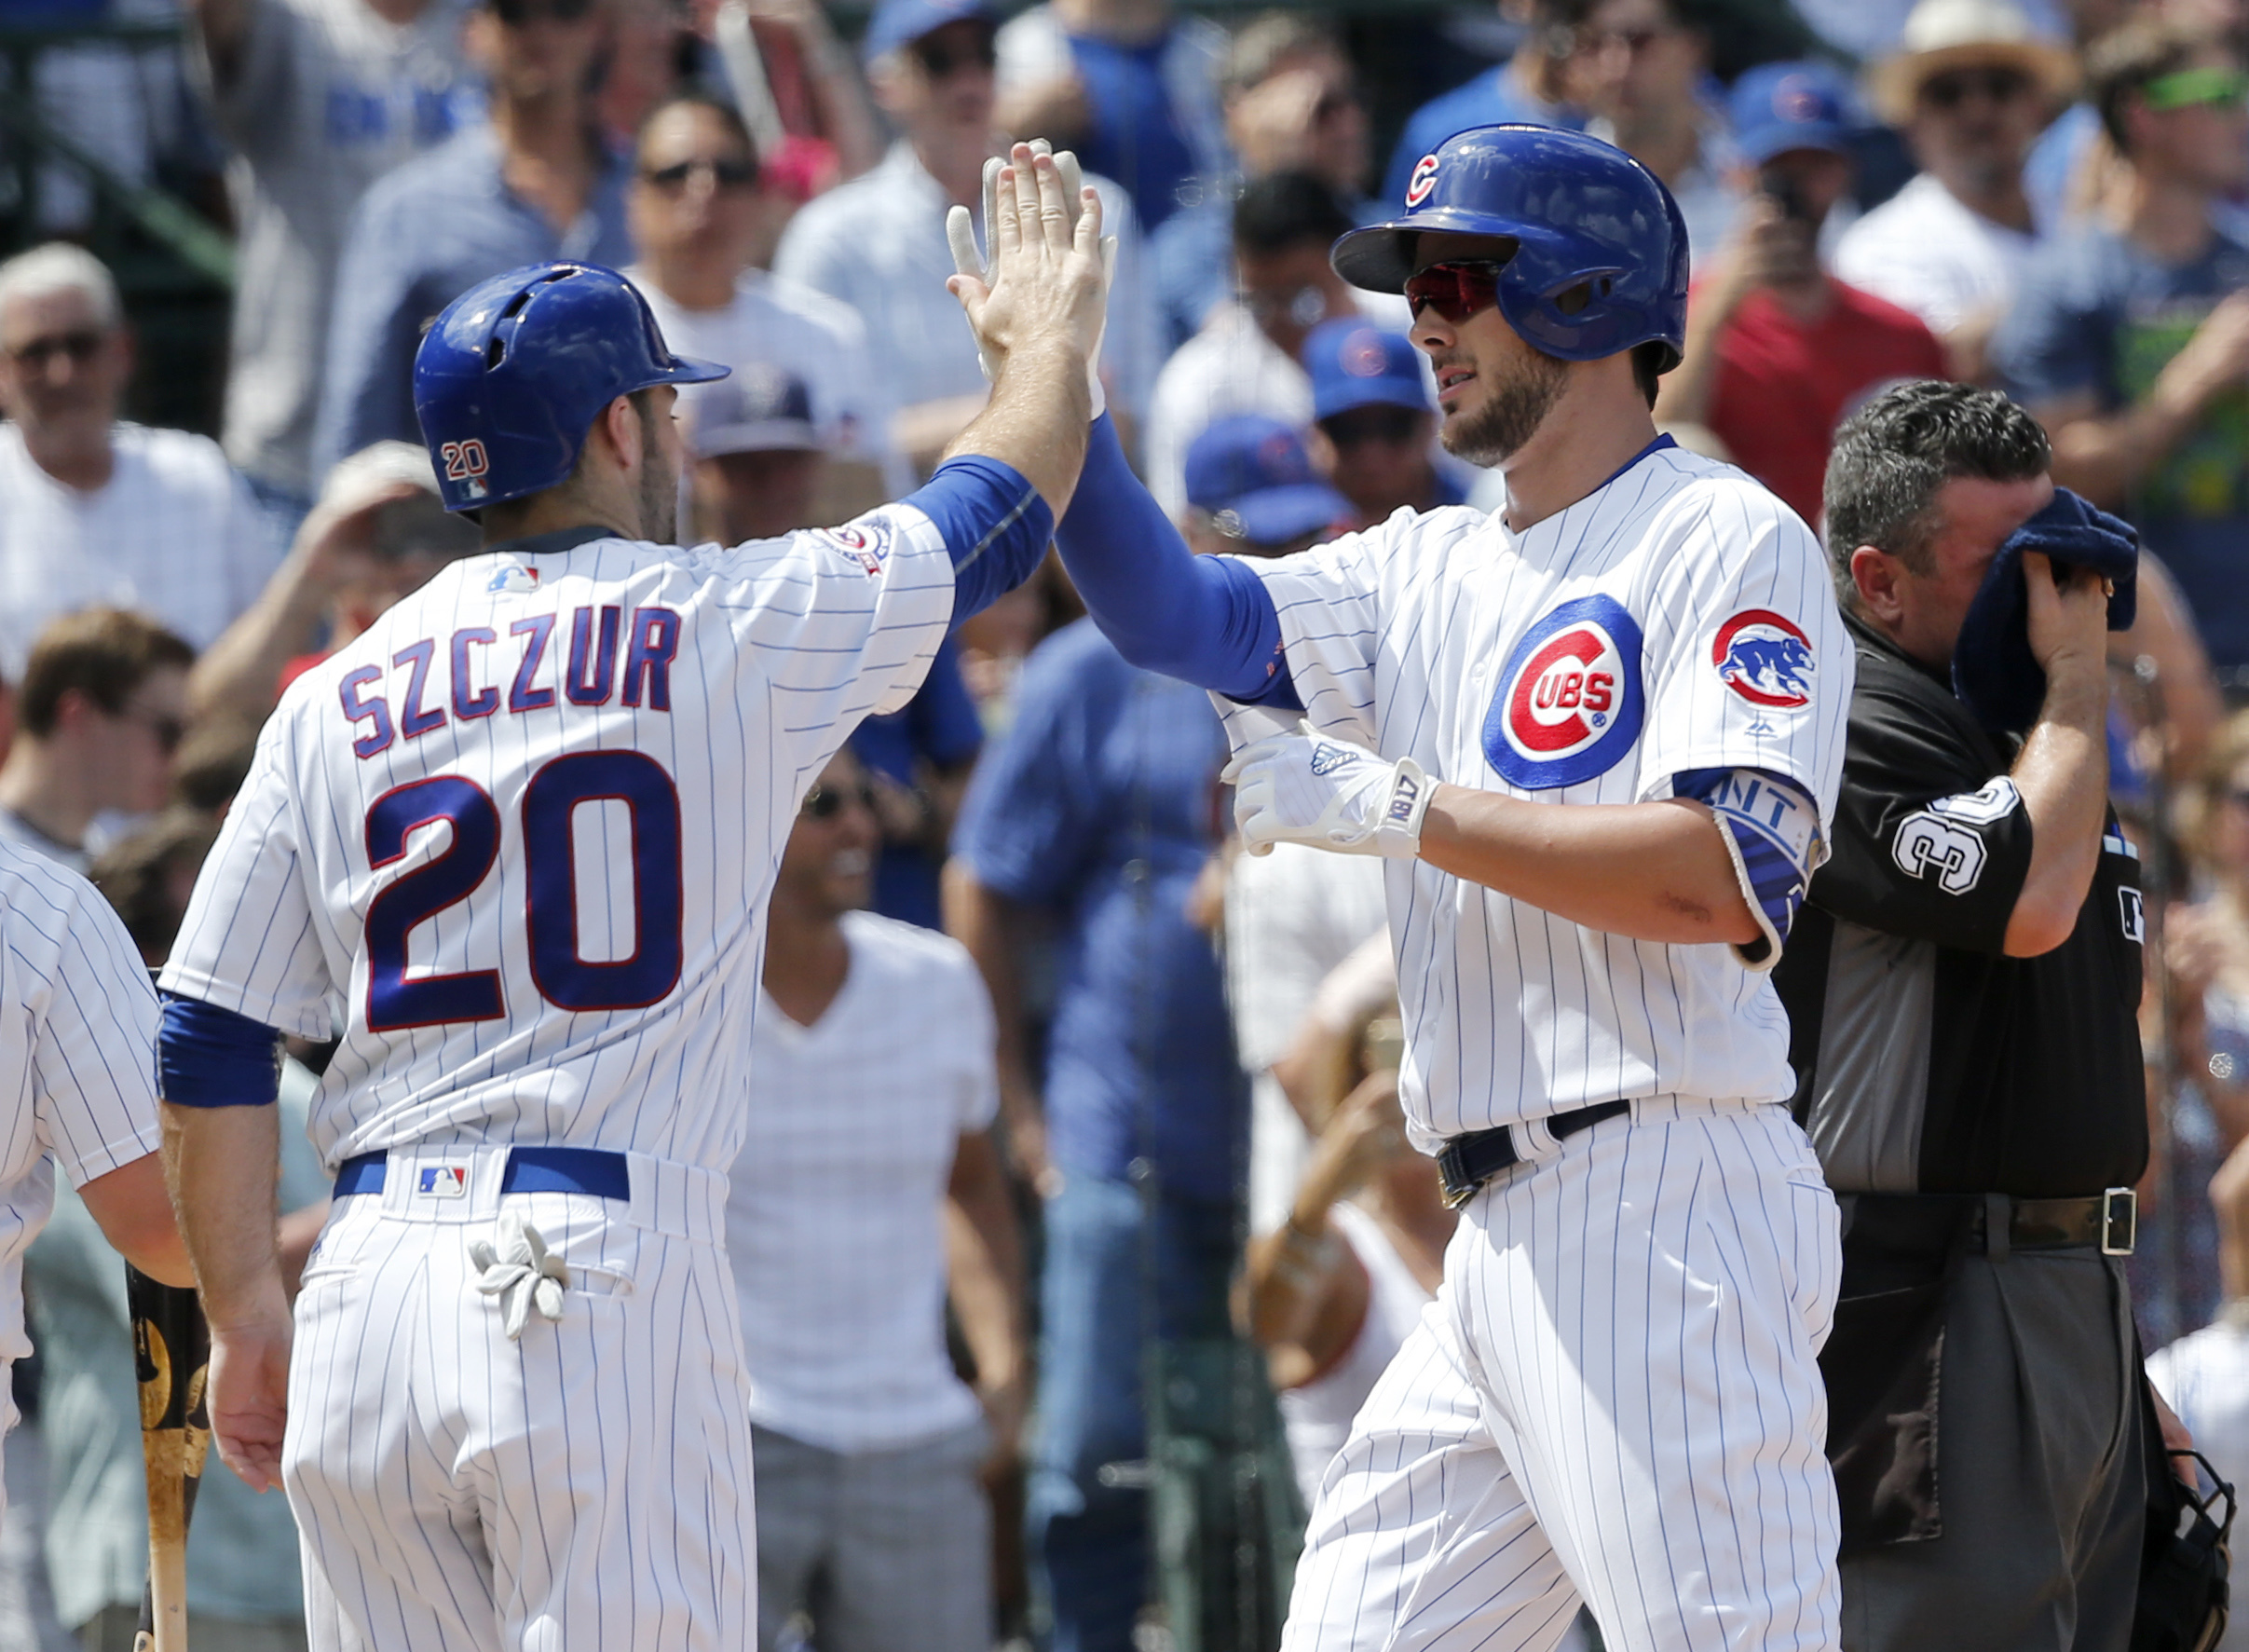 Chicago Cubs' Matt Szczur (20) greets Kris Bryant at home after the pair scored on Bryant's two-run home run off Milwaukee Brewers starting pitcher Zach Davies during the third inning of a baseball game Thursday, Aug. 18, 2016, in Chicago. (AP Photo/Charl